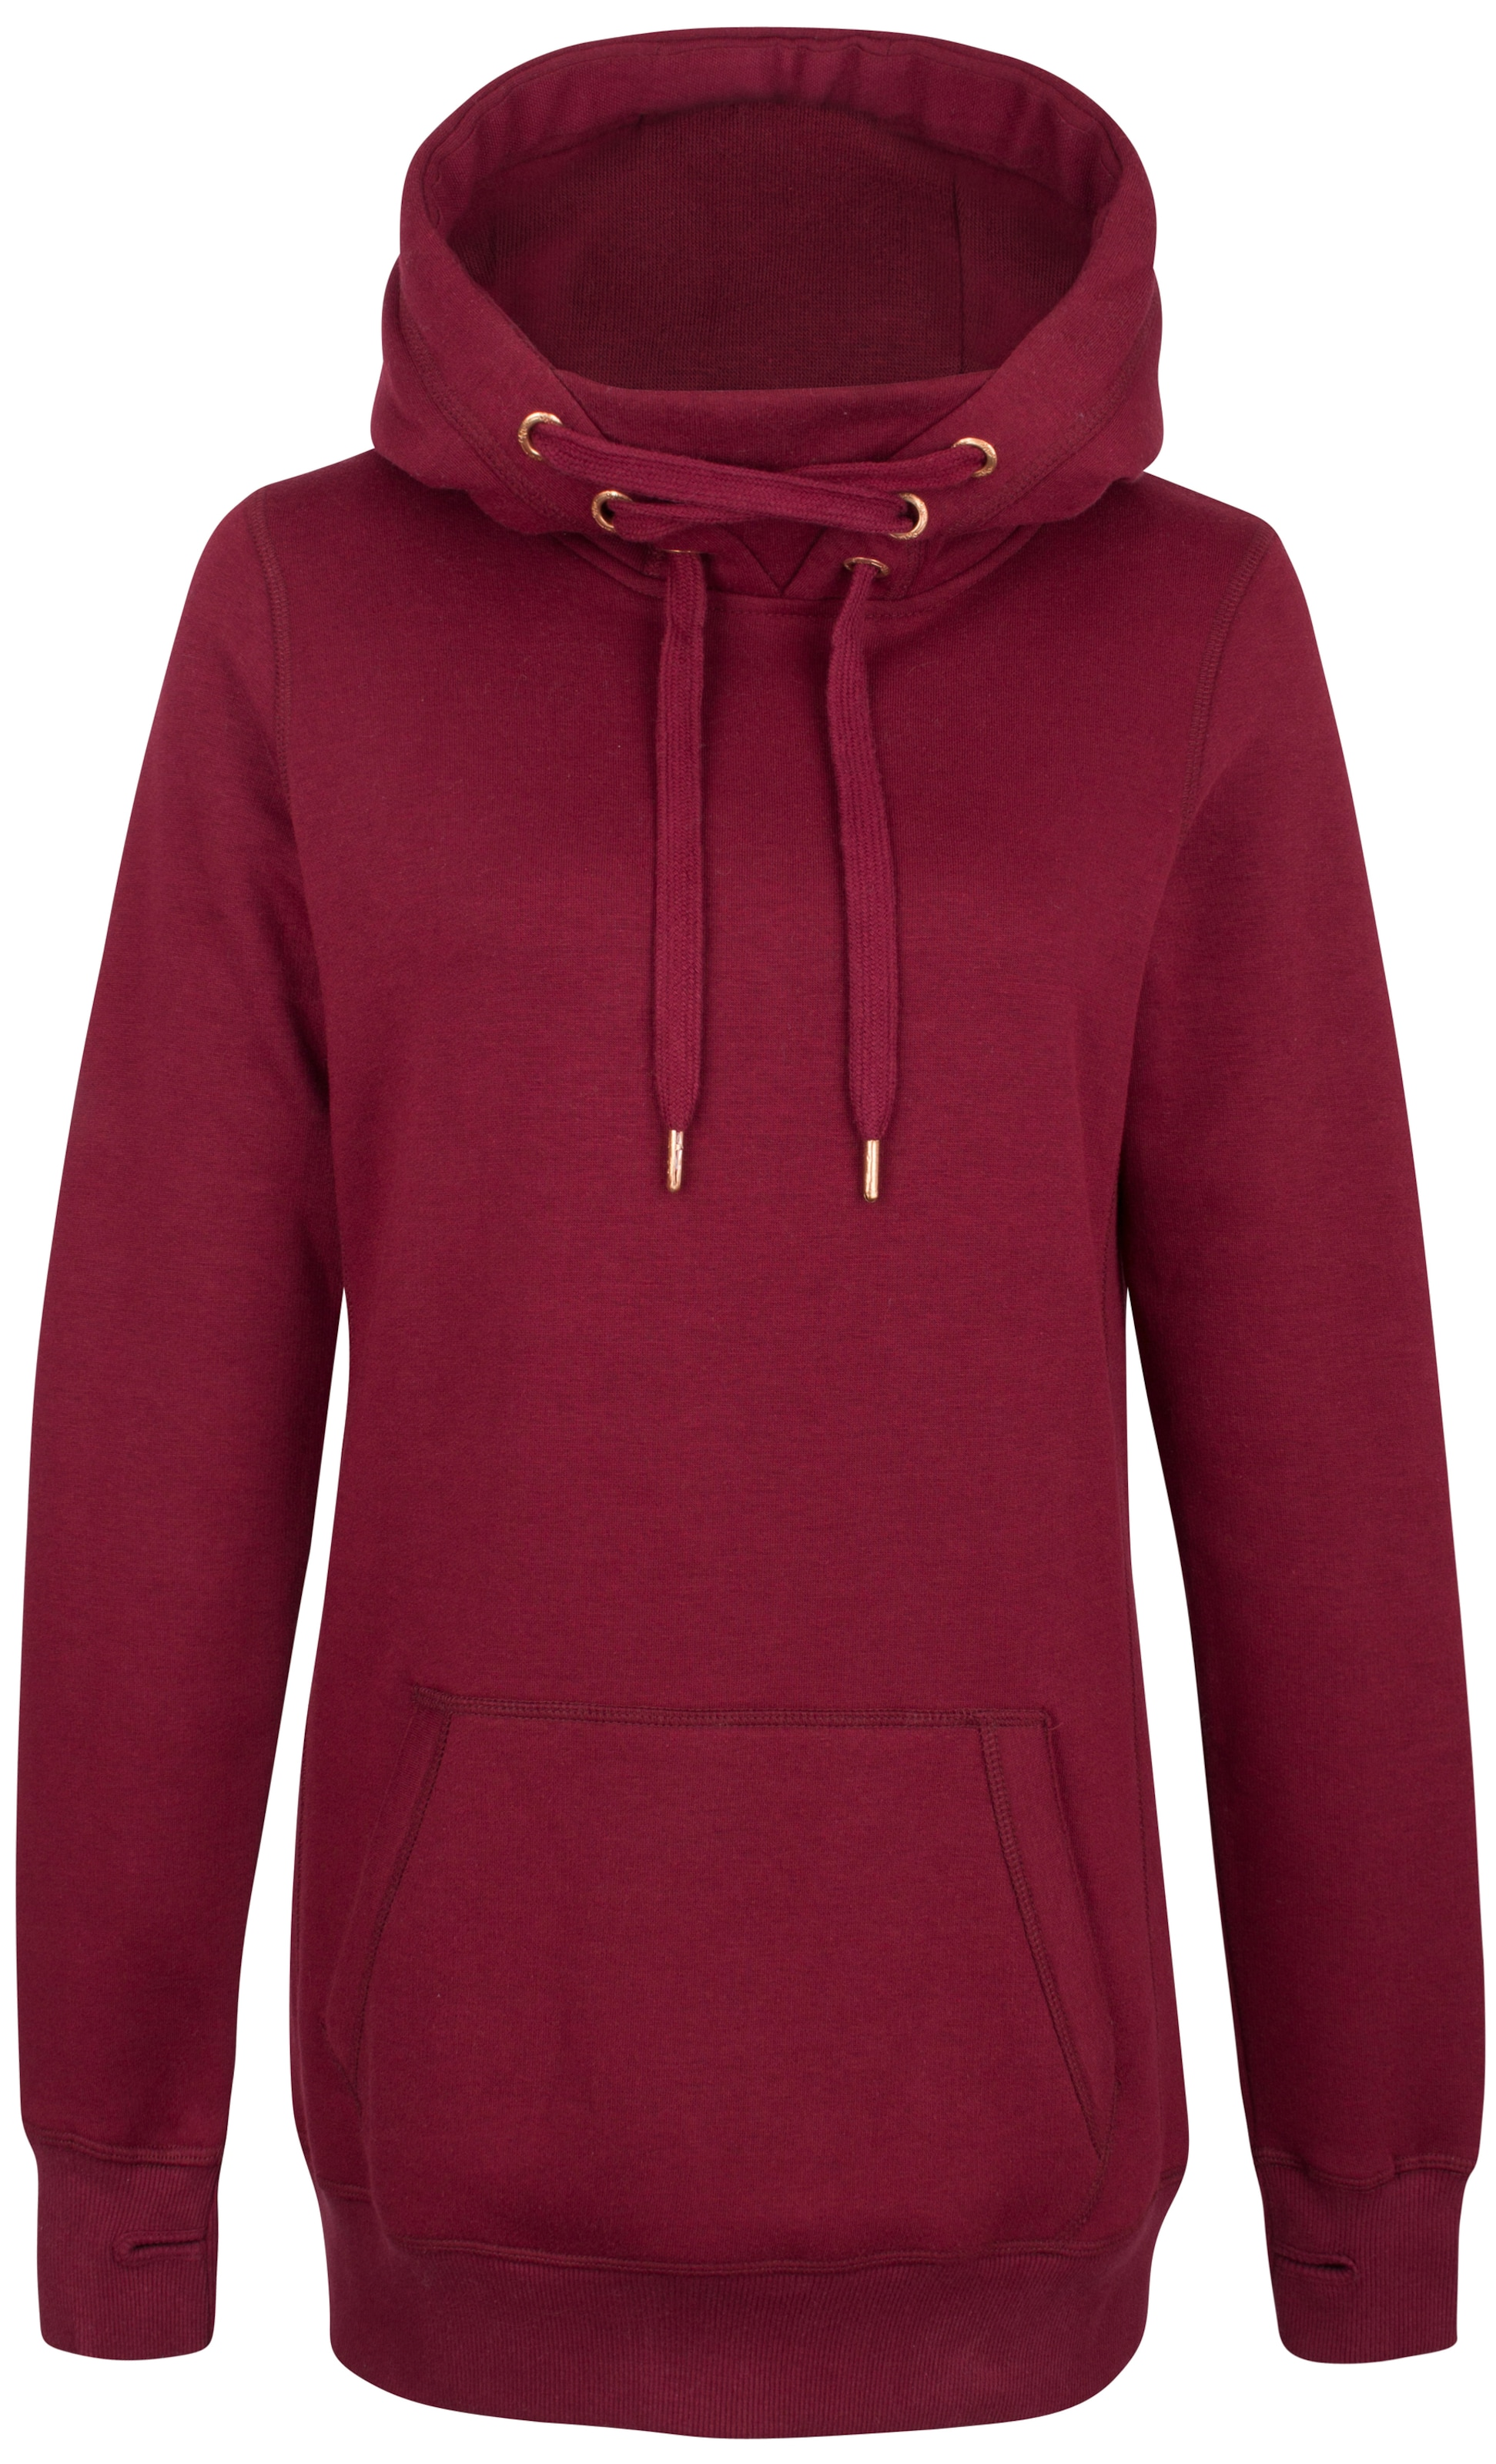 En Sweat Rouge shirt Mymo Violet JFTlK1c